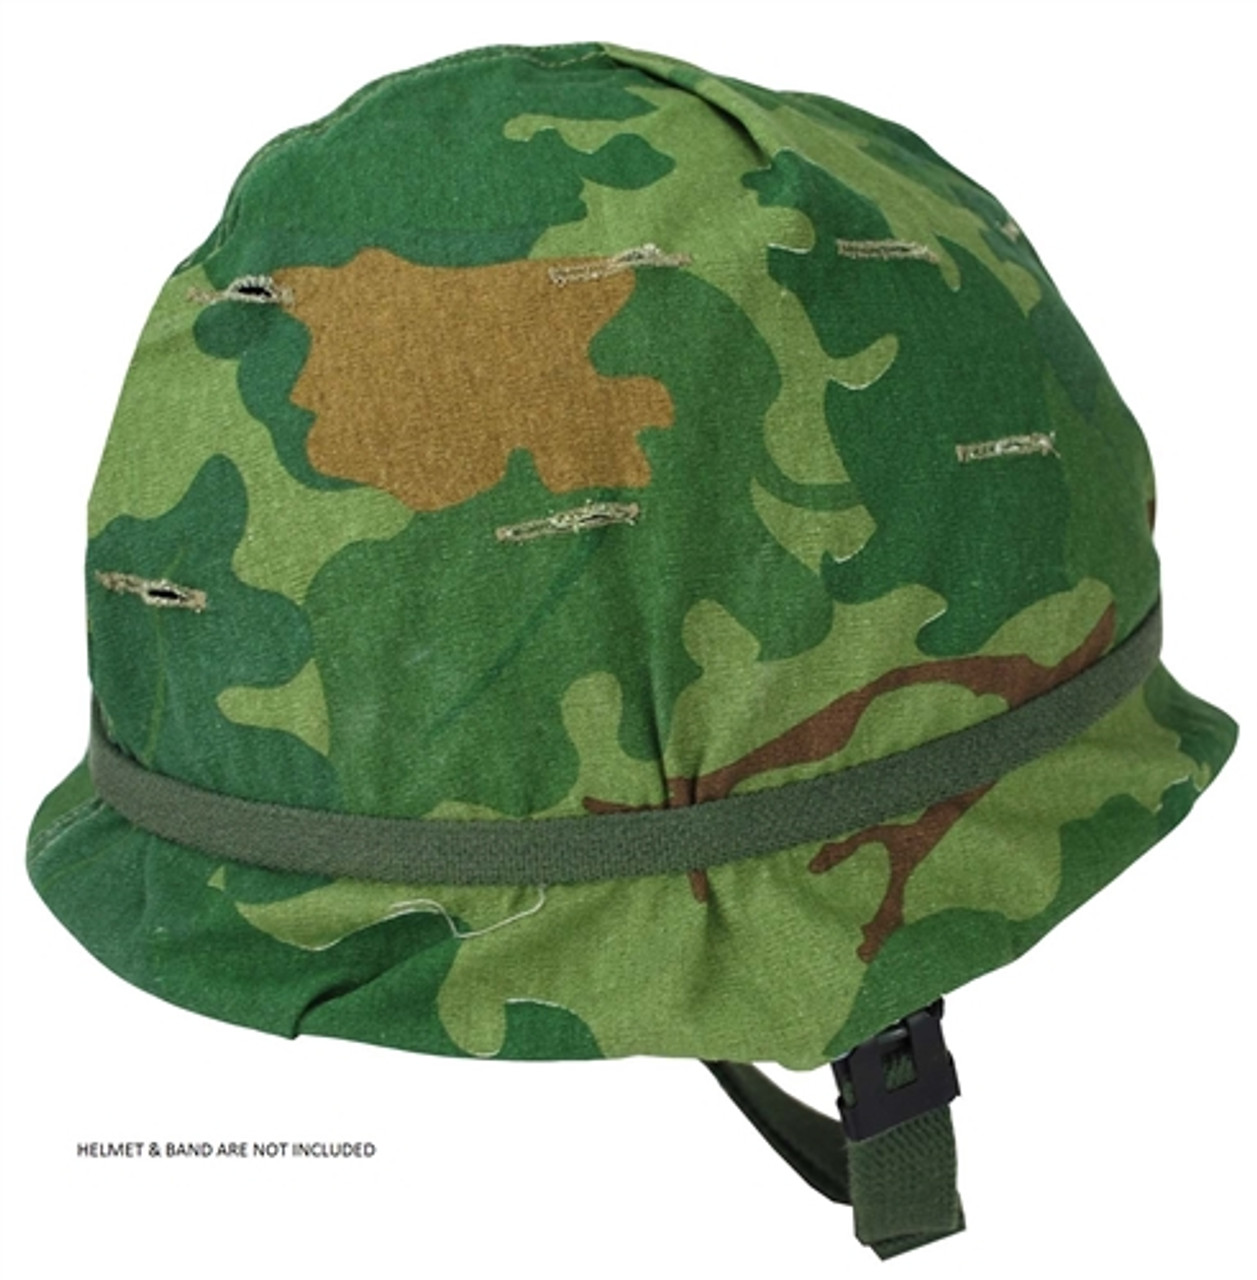 Repro Vietnam Era Mitchell Pattern Helmet Cover from Hessen Antique